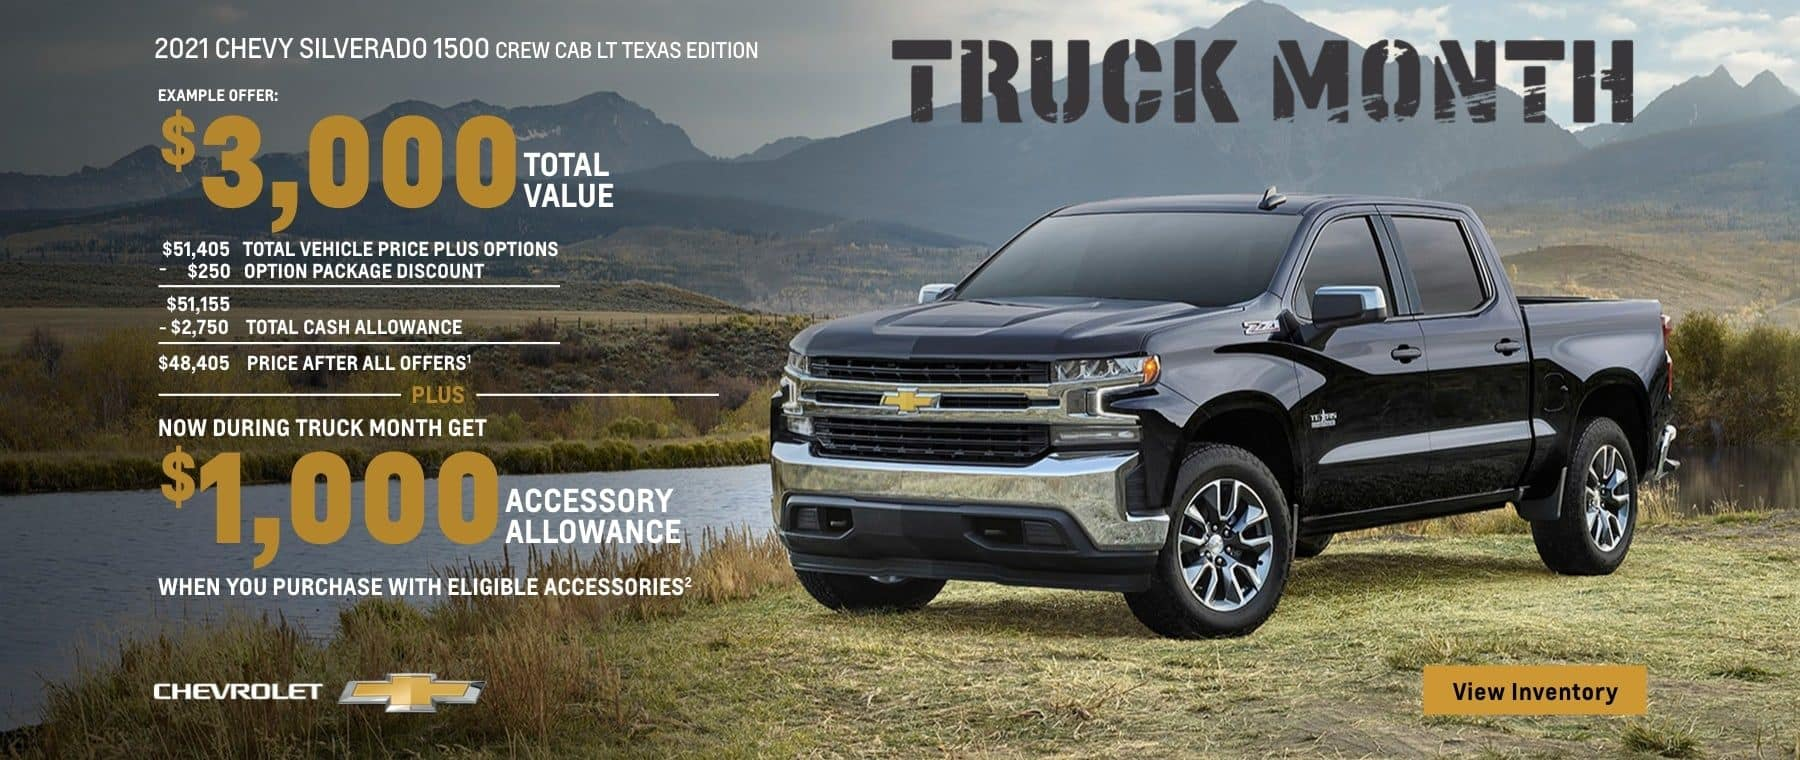 Chevy Truck Month. 2021 Chevy Silverado 1500 Crew Cab Texas Edition. $3,000 Total Value. Plus, make it your own during Truck Month with $1,000 accessory allowance when you purchase with eligible accessories.